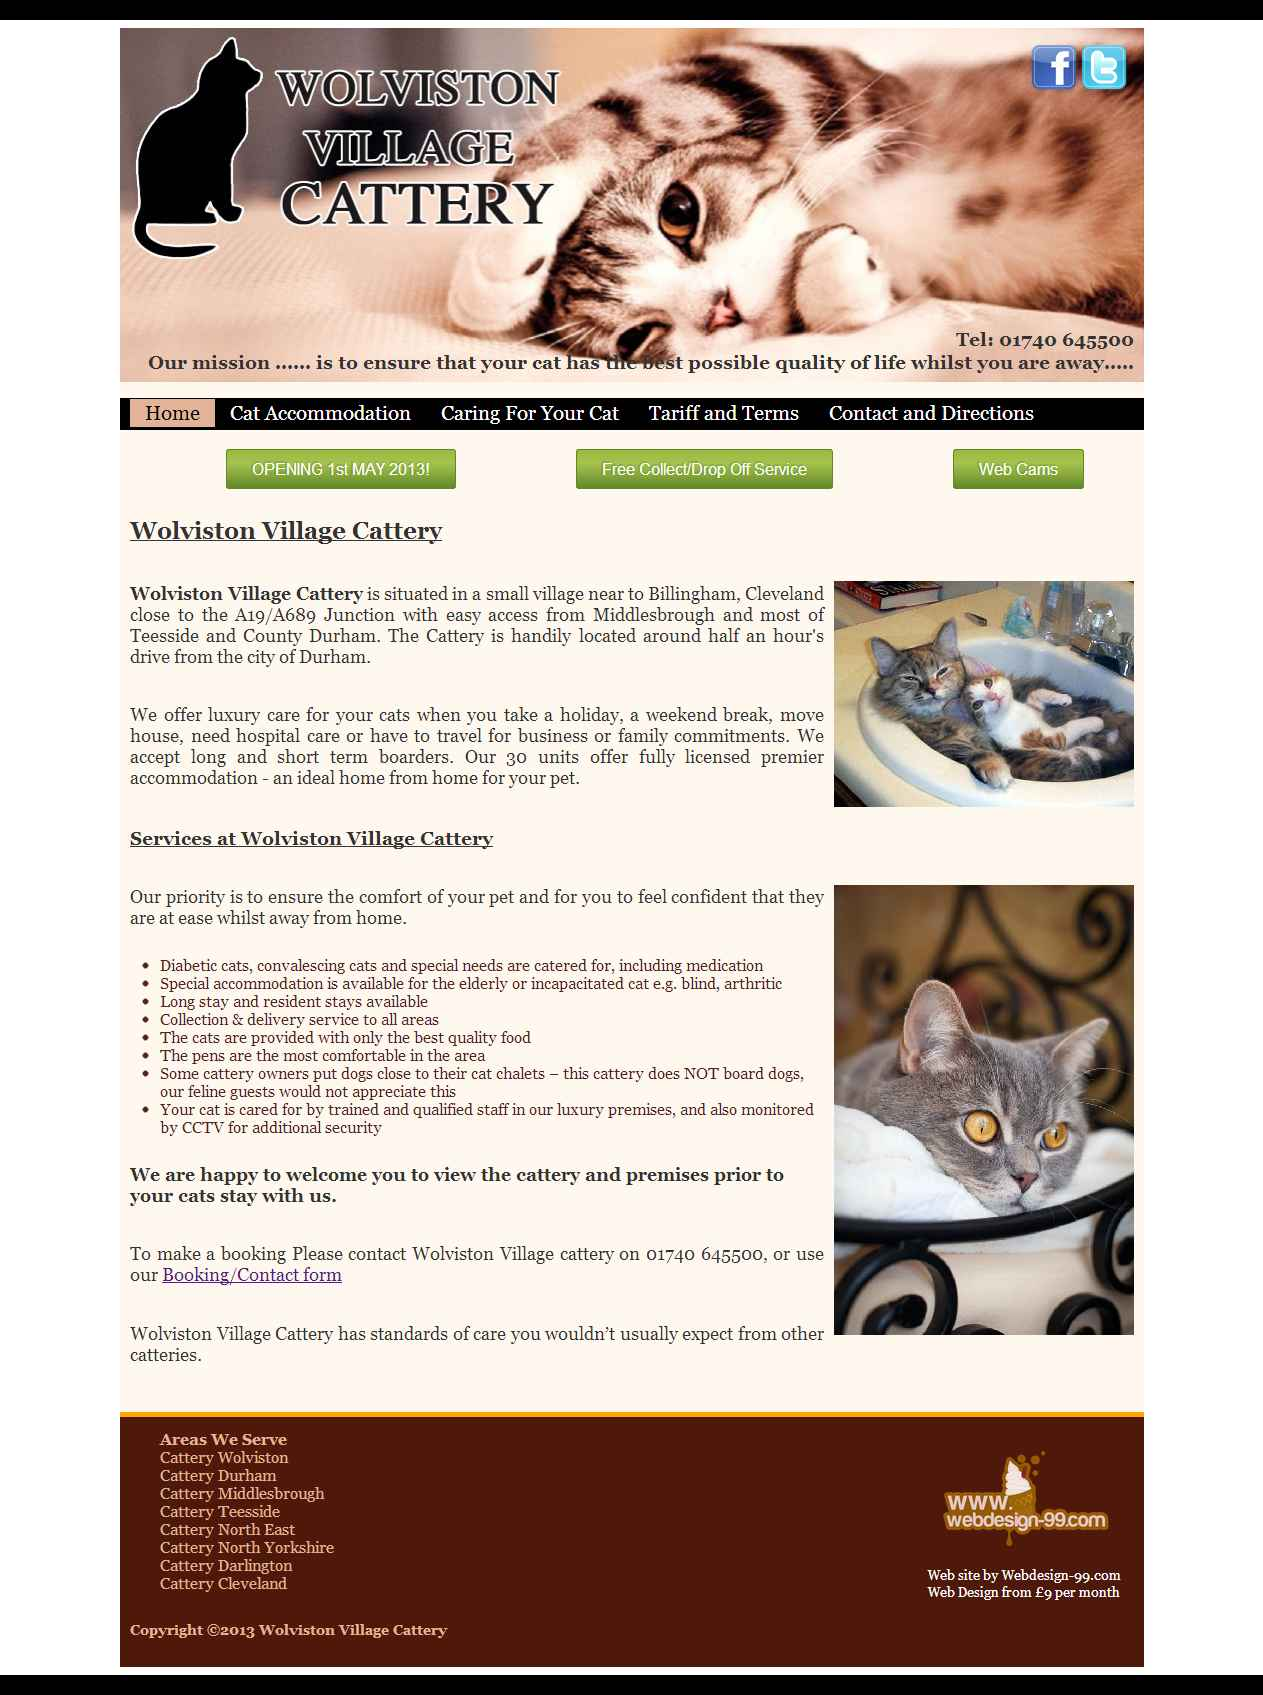 Wolviston Village Cattery web site built by Darlington Design